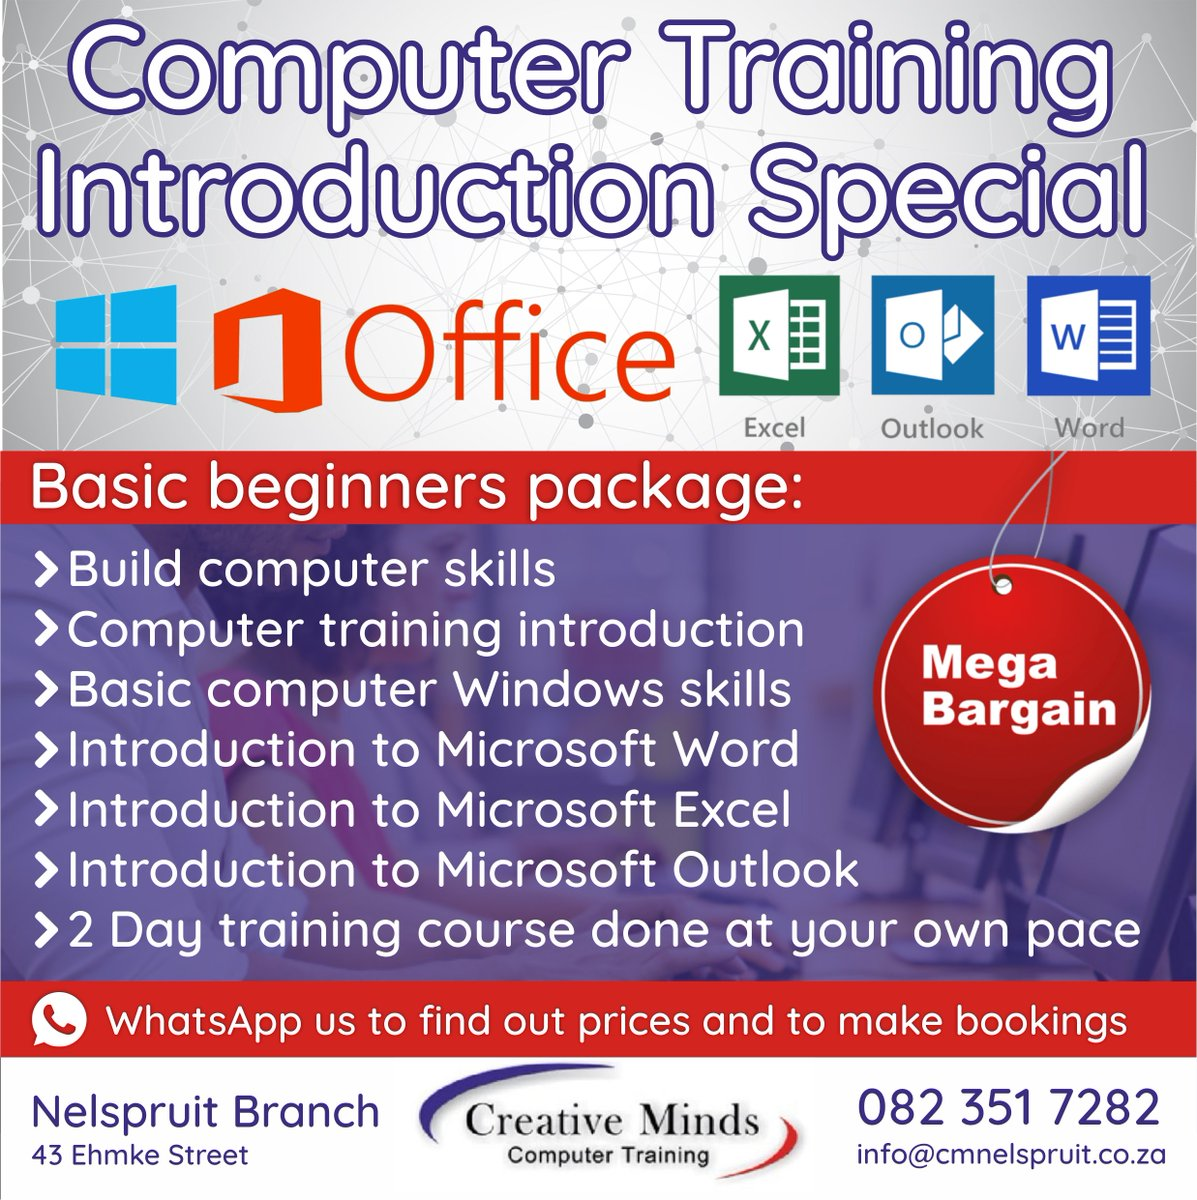 We are currently running a bargain offer on our Computer Introduction Training course of two days.  http://www.minds.co.za #creativeminds #computertraining #training #computers #technology #tech #computer #laptops #electronics #pc #instatech #gadgets #device #computersciencepic.twitter.com/VNLphI27N5